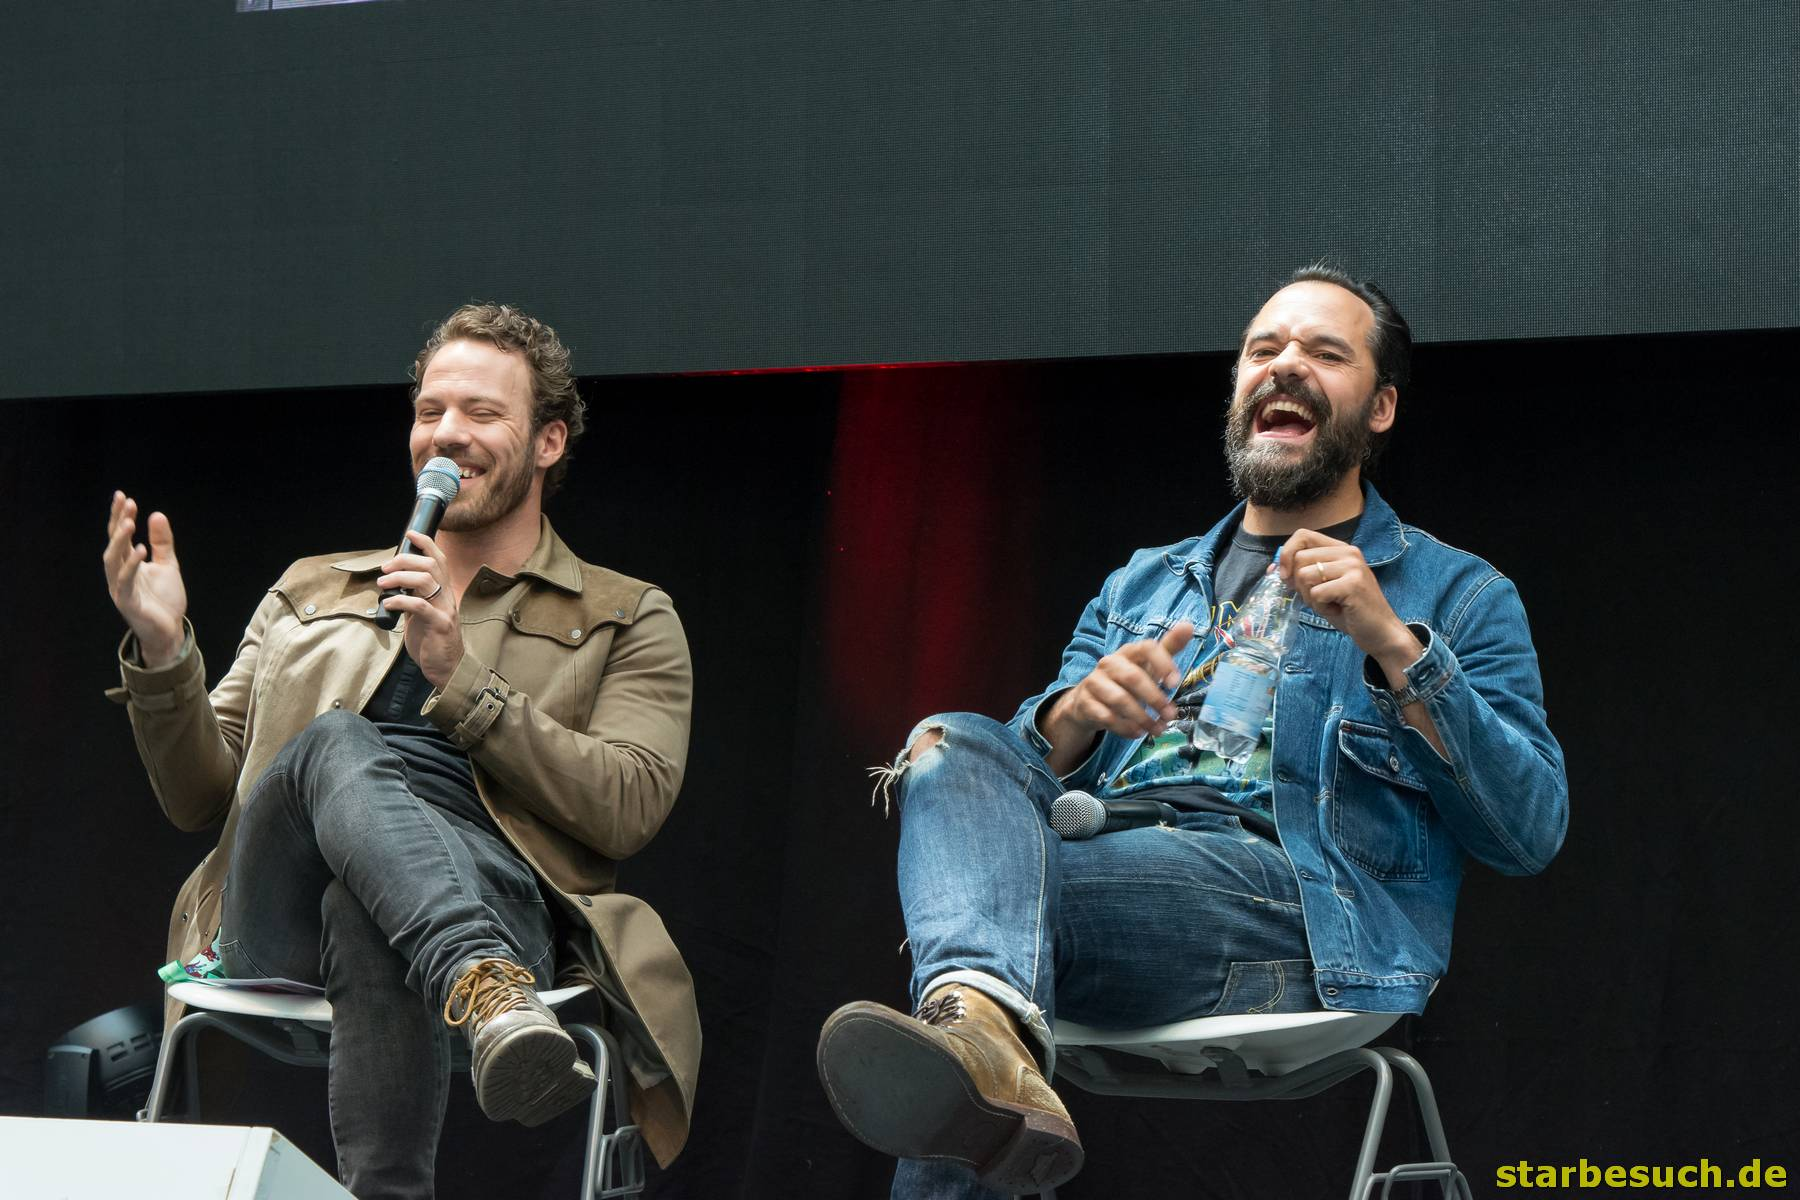 July 1st 2017. Stuttgart, Germany. Actors Falk Hentschel and Caspar Crump had fun during their DC Legends of Tomorrow panel at Comic Con.